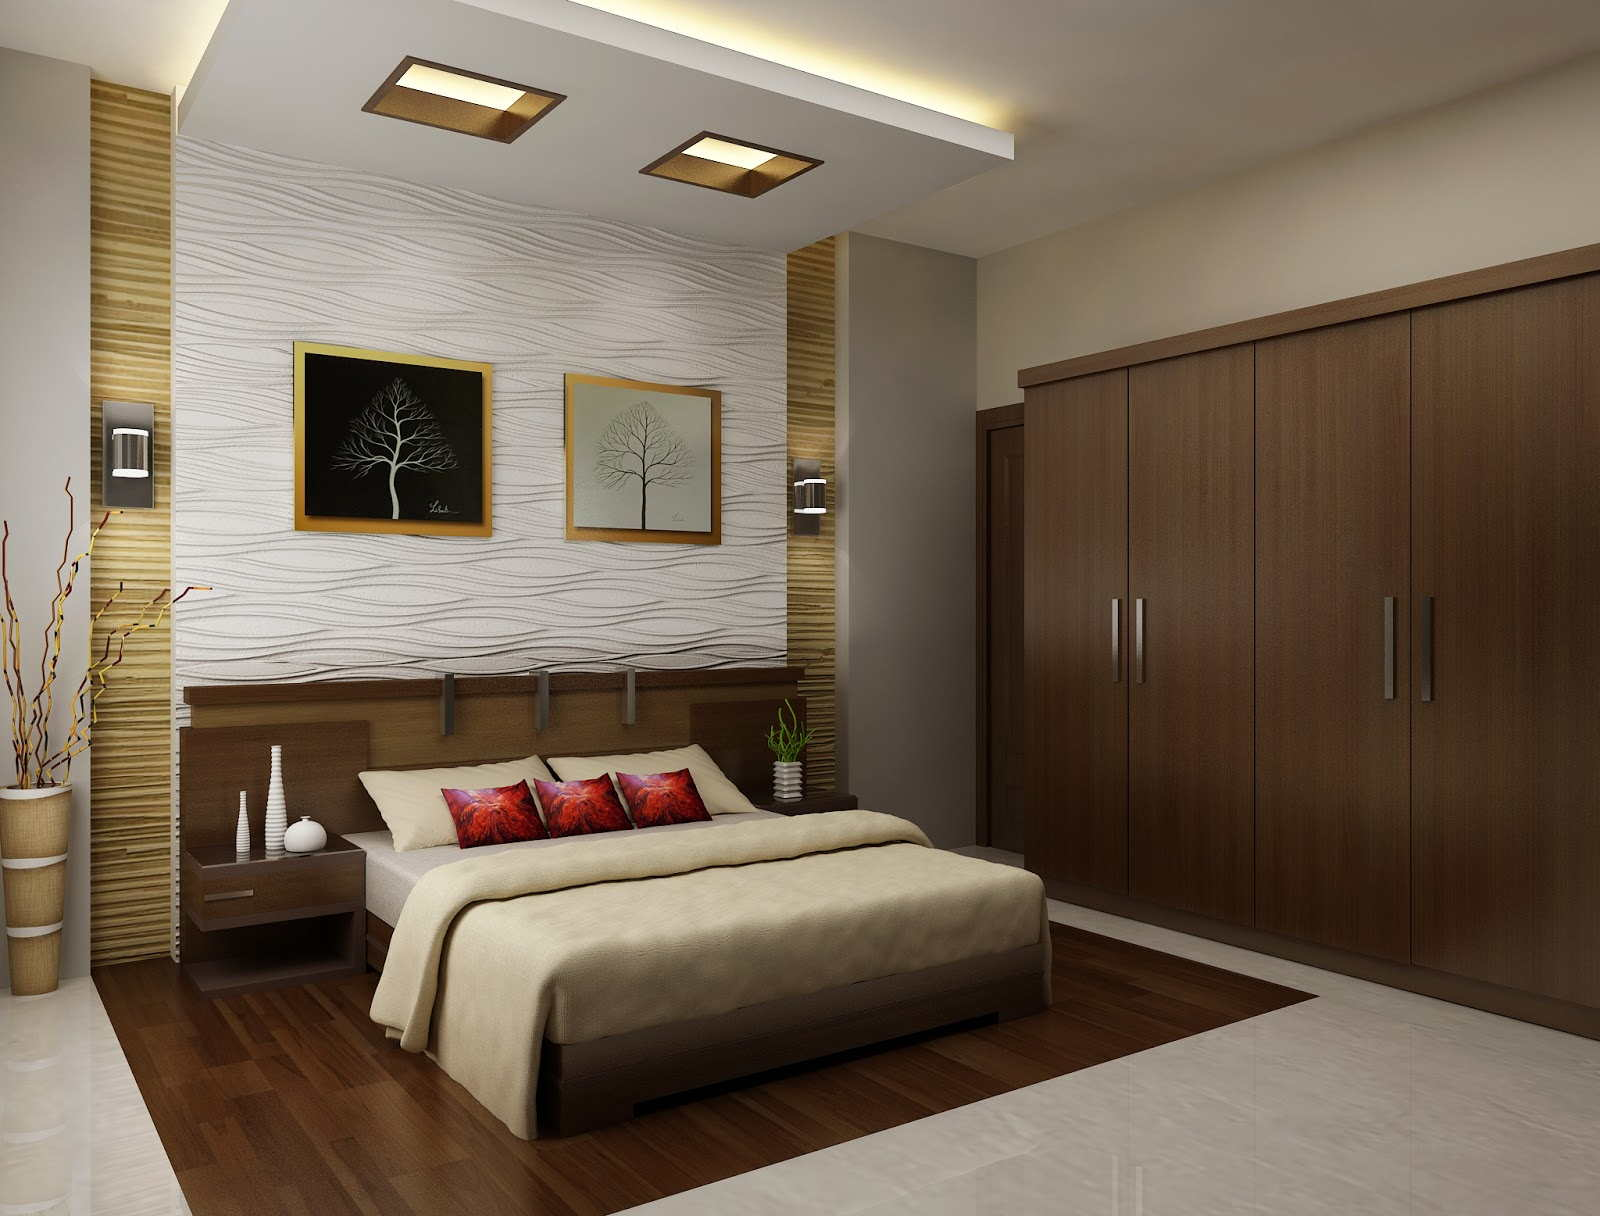 Interior Design Home Decorating Ideas: 11 Attractive Bedroom Design Ideas That Will Make Your